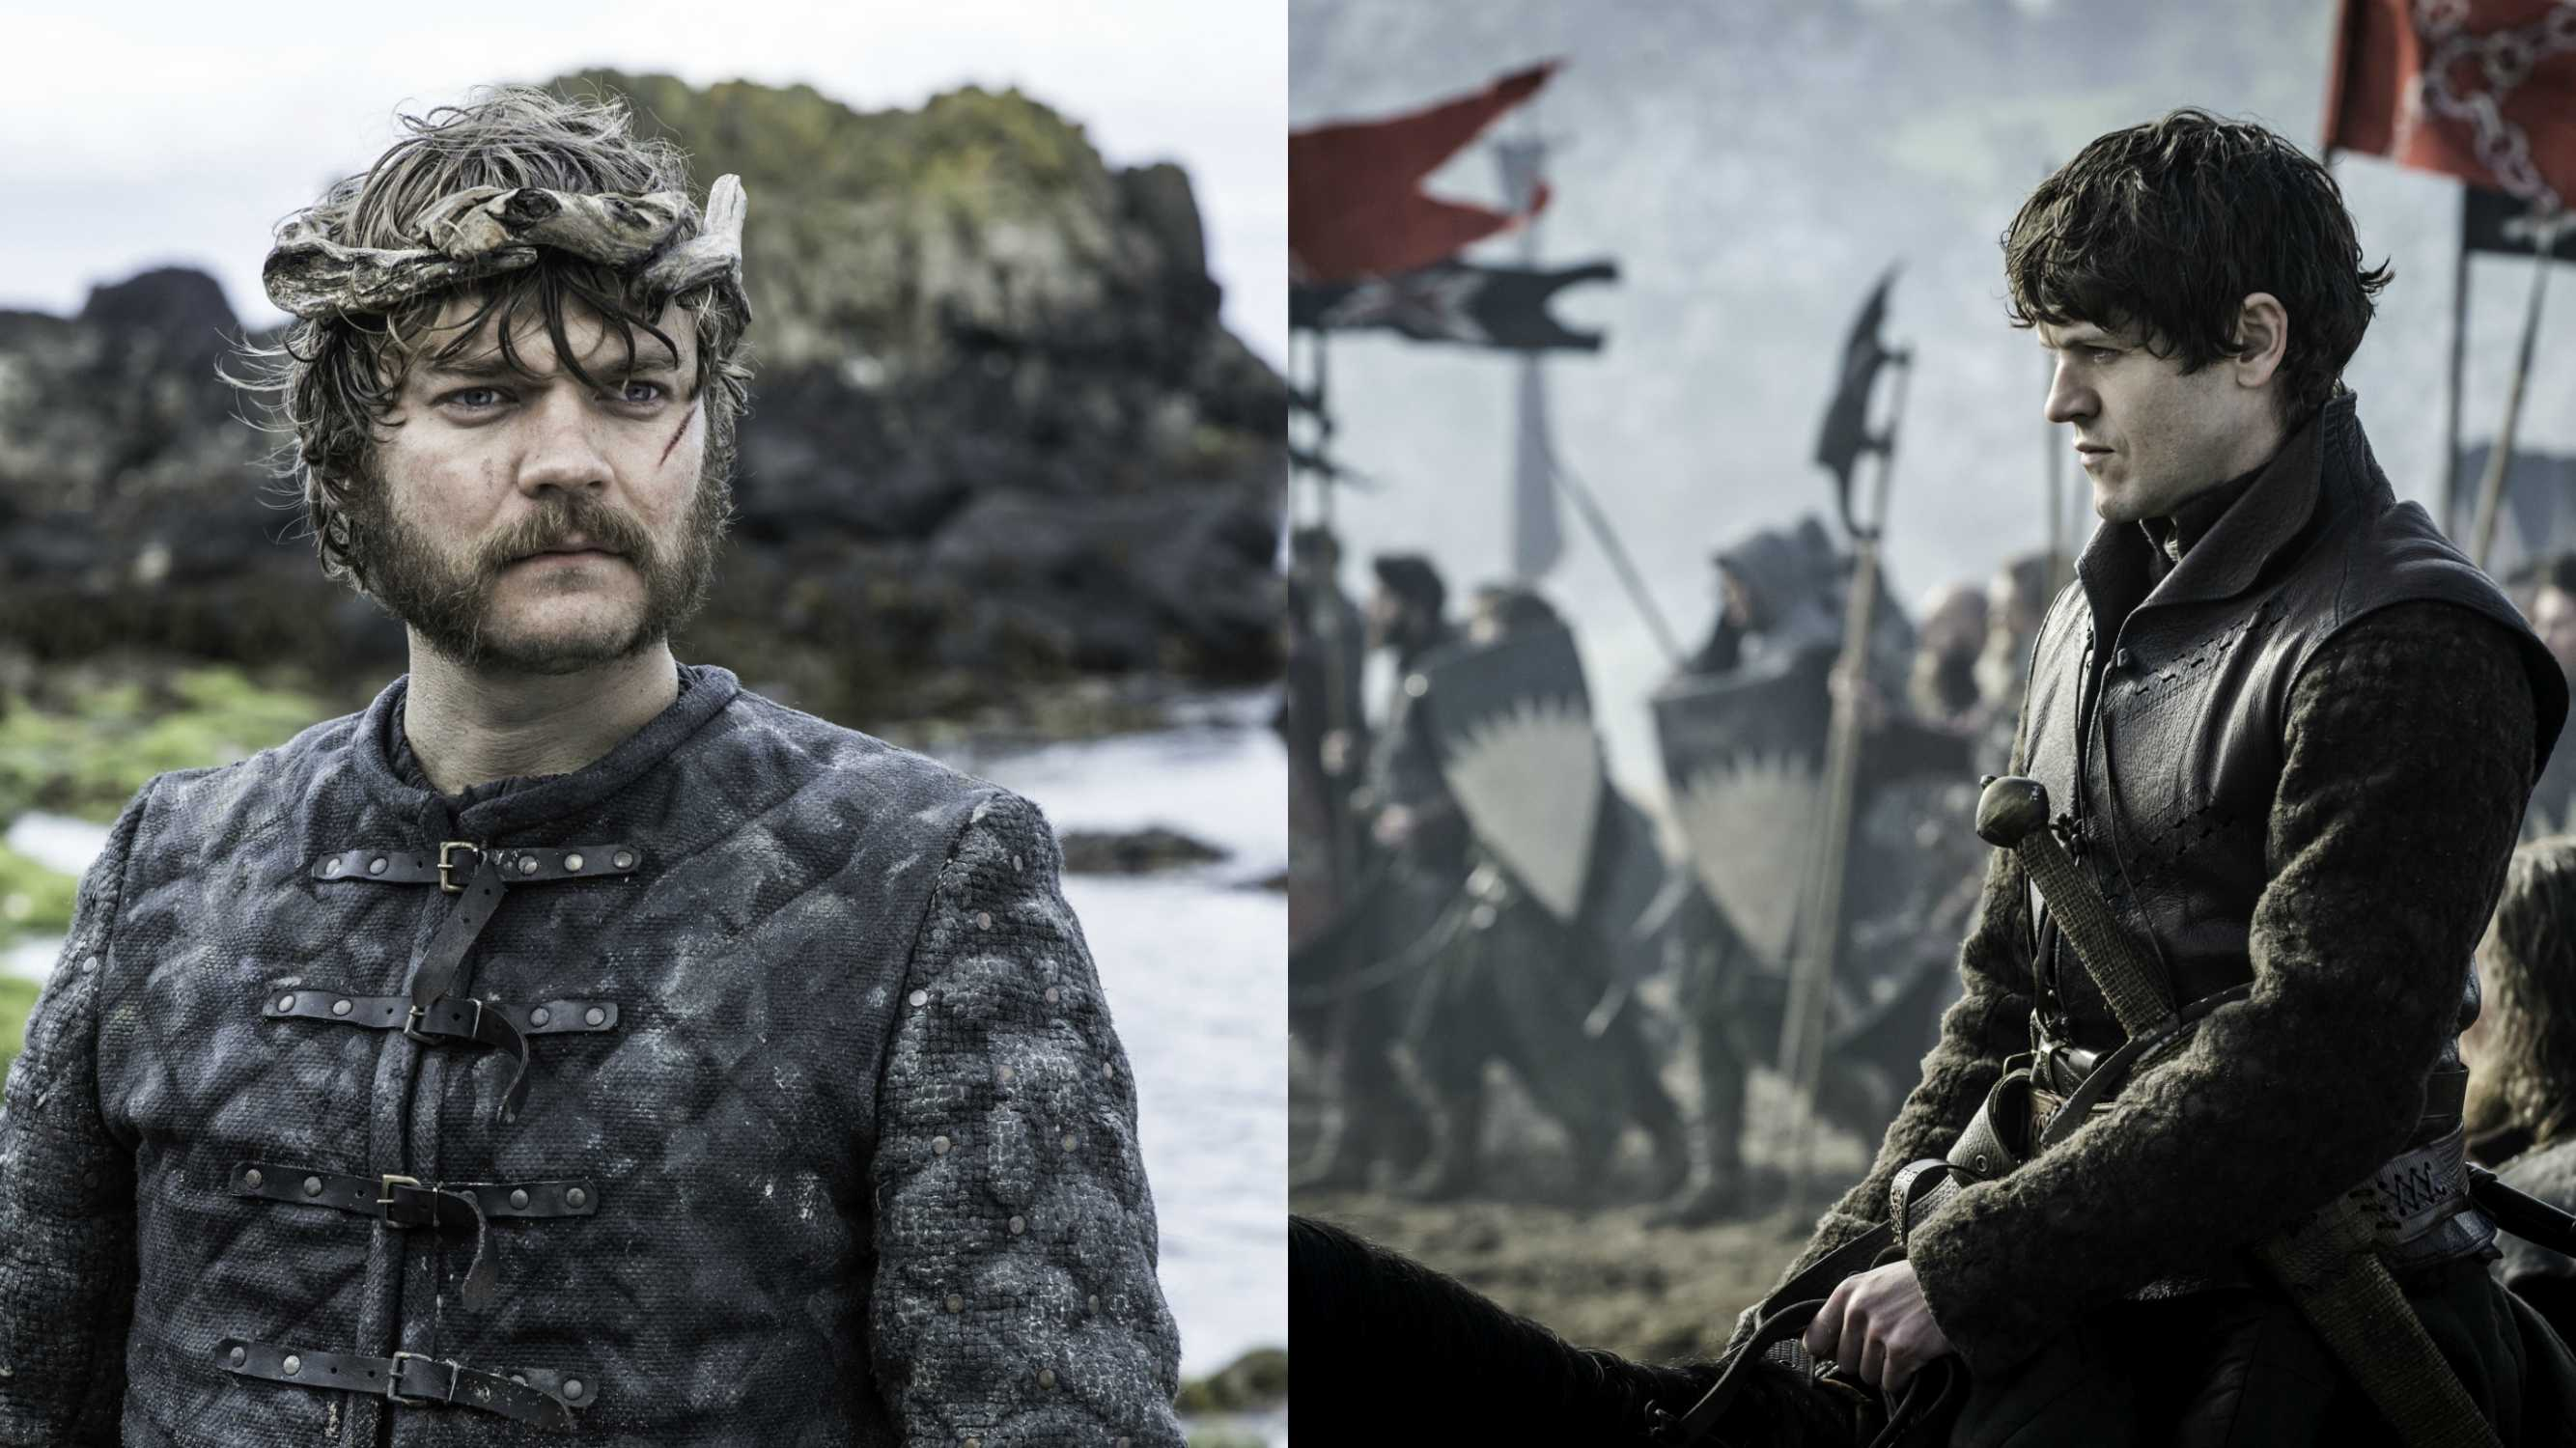 Game of Thrones villains Euron Greyjoy and Ramsay Bolton